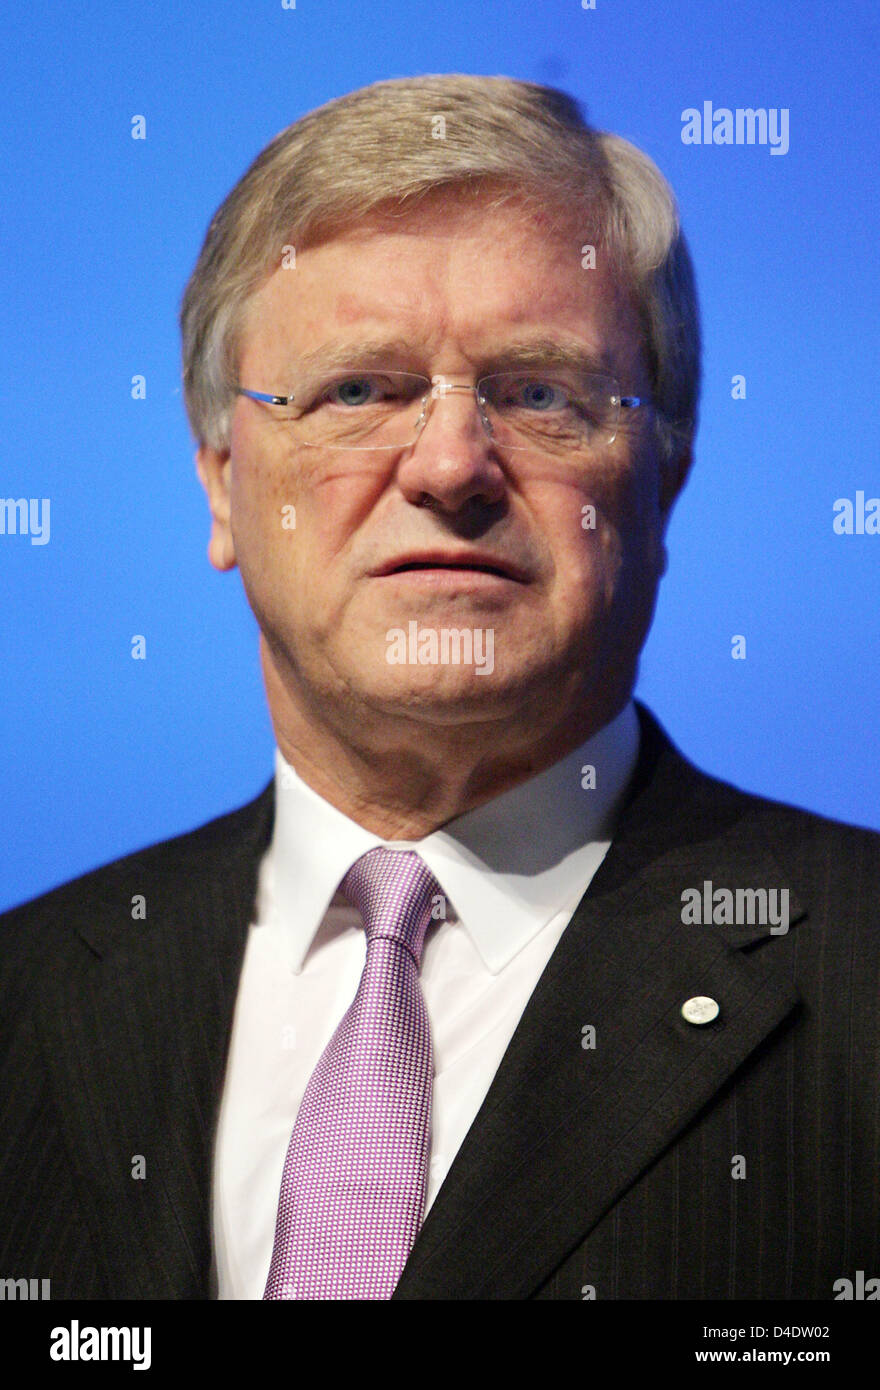 Werner Ag ceo of bayer ag werner wenning is pictured prior to the company s